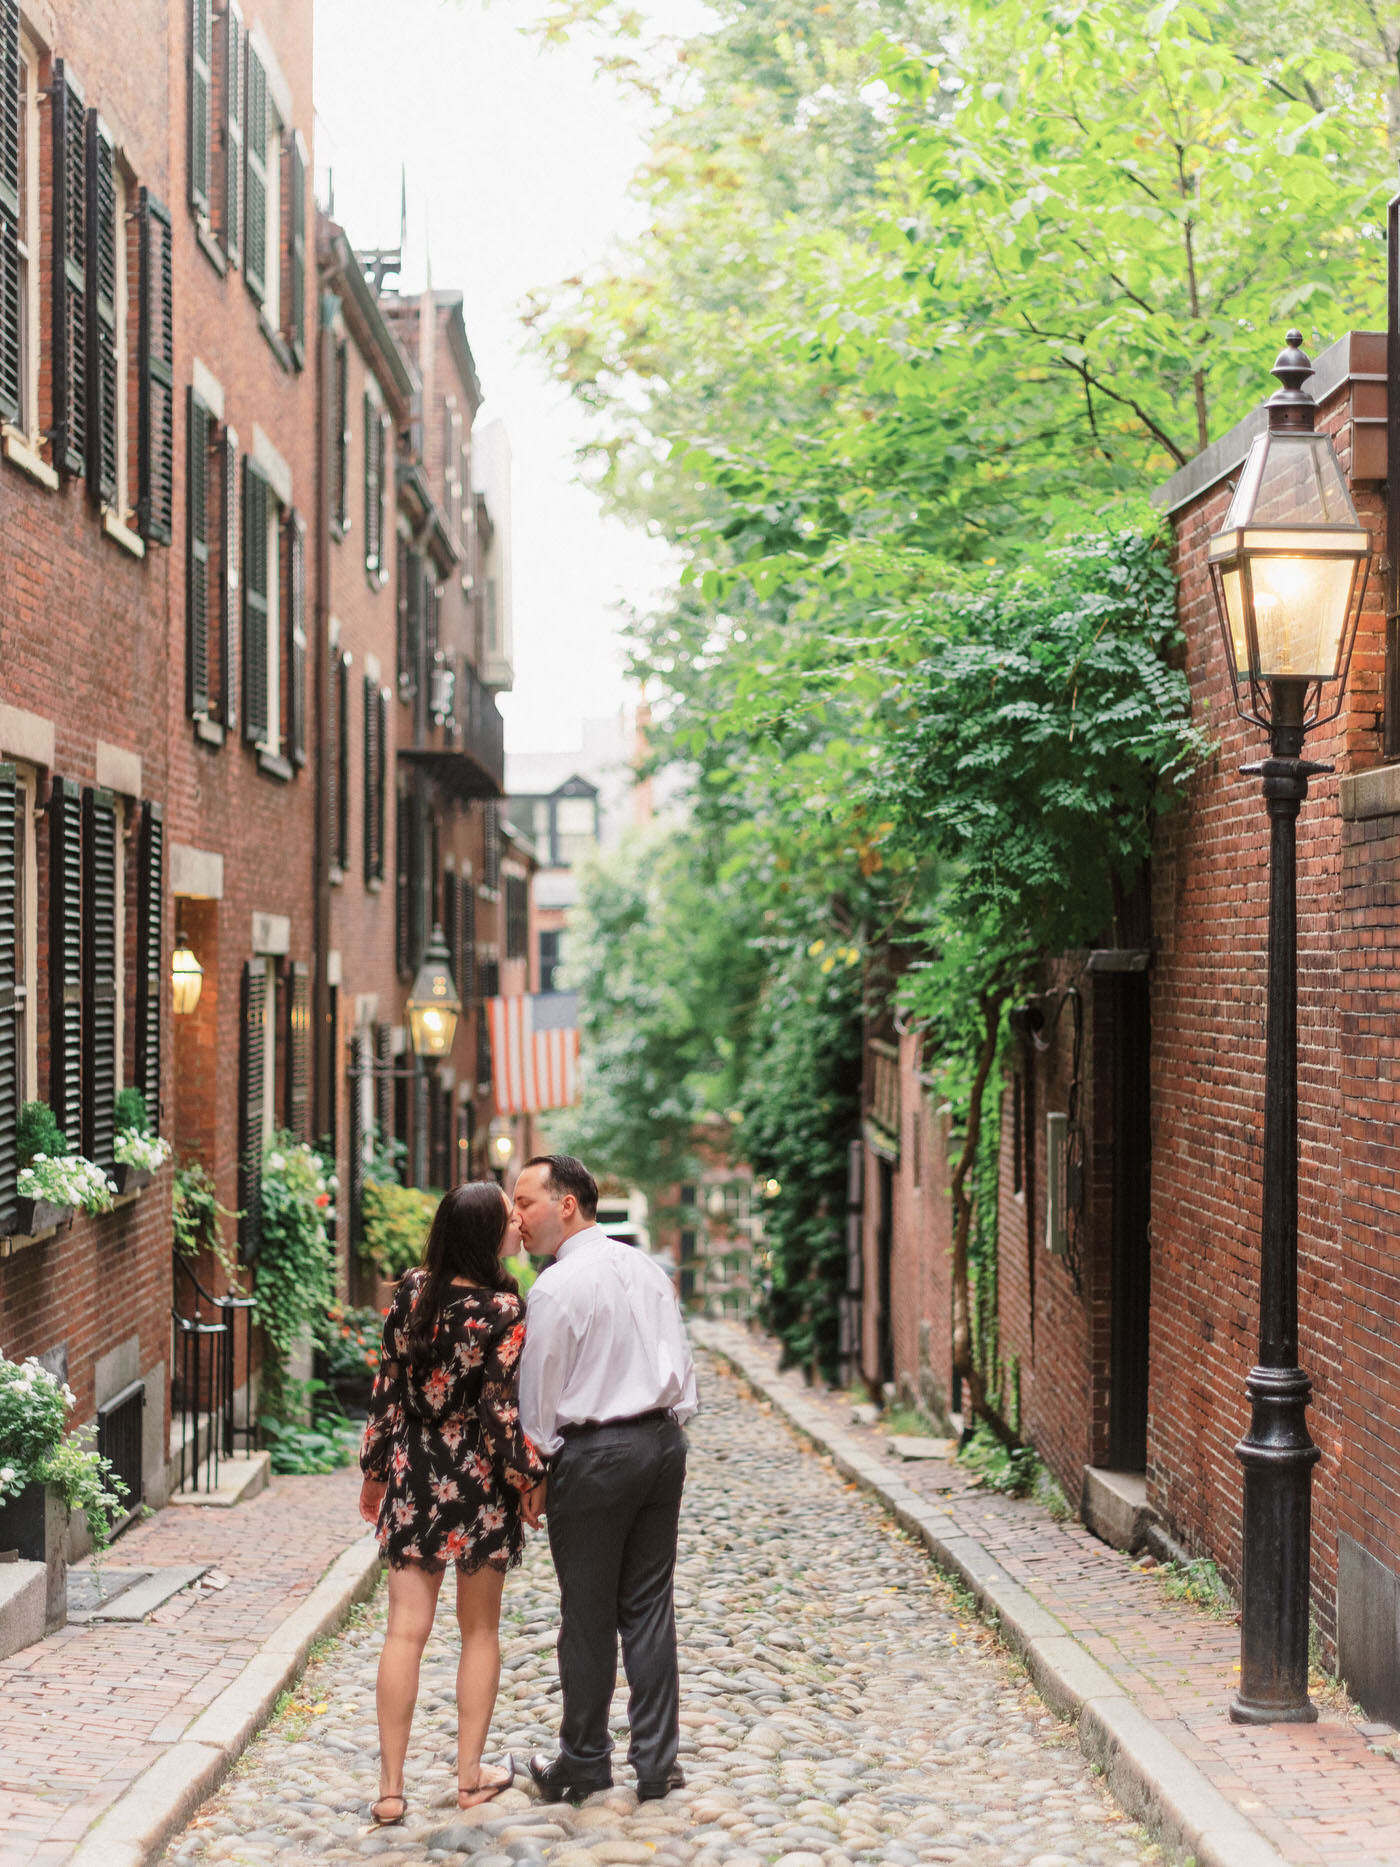 086-engagement-session-in-historic-beacon-hill-boston-by-top-fine-art-photographer.jpg